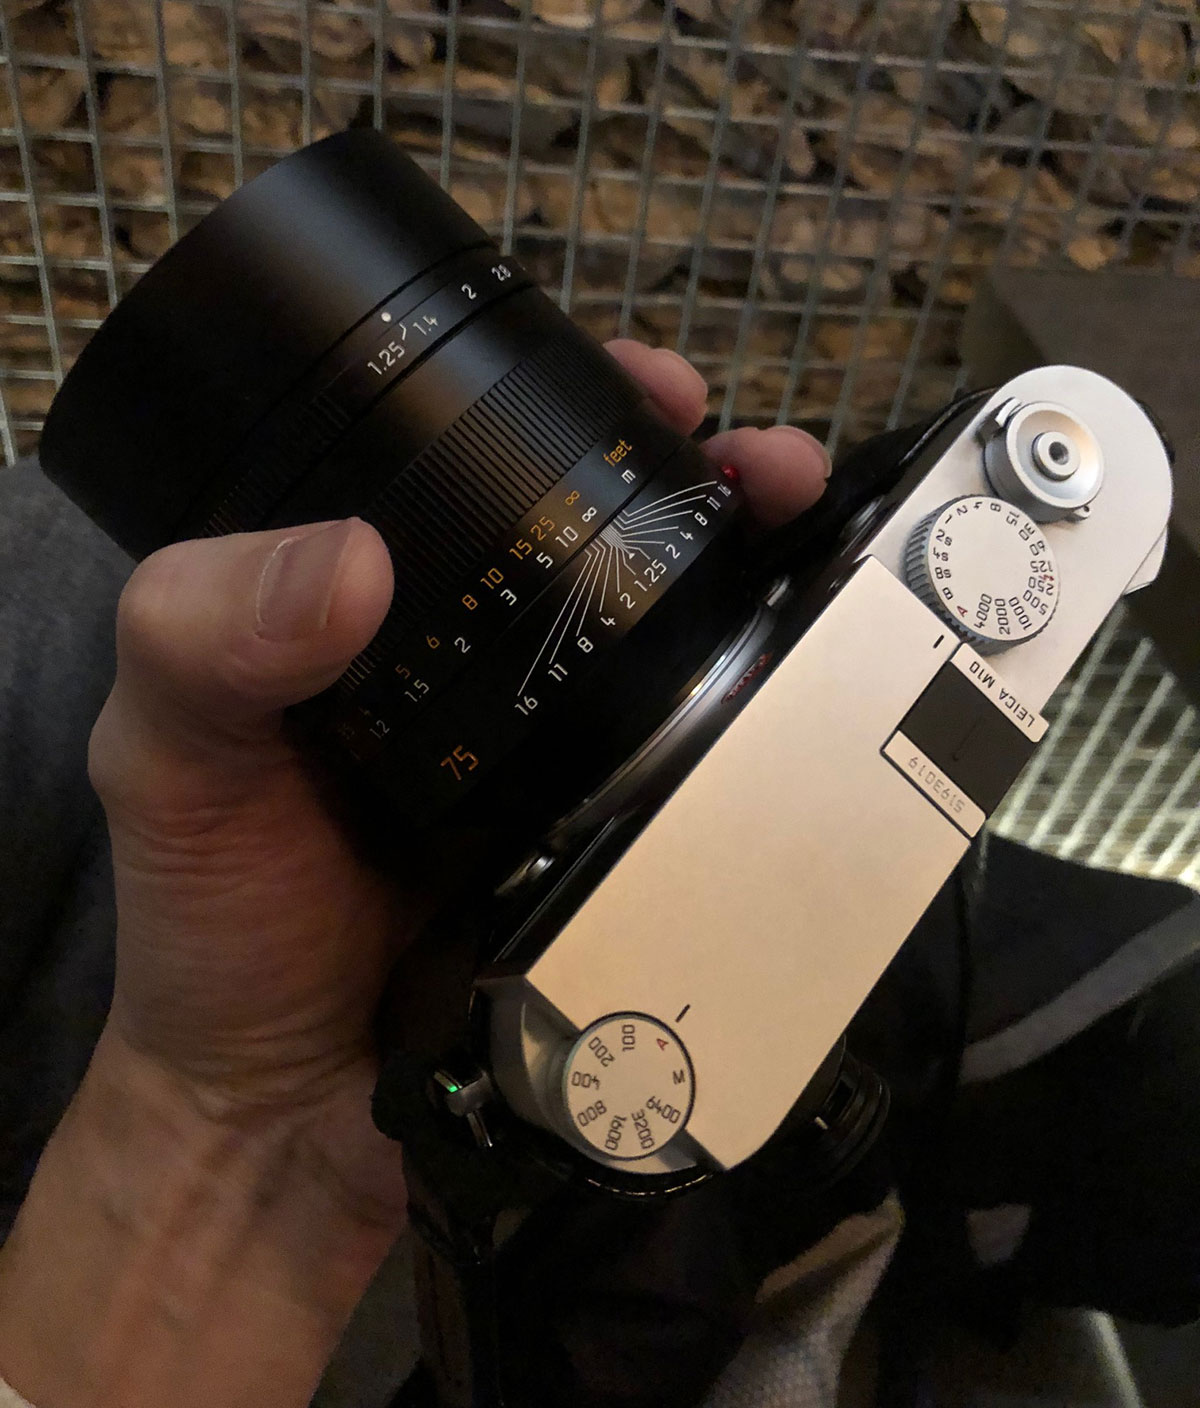 Mega shootout (best of the best): Sony, Leica, and Phase One comparison